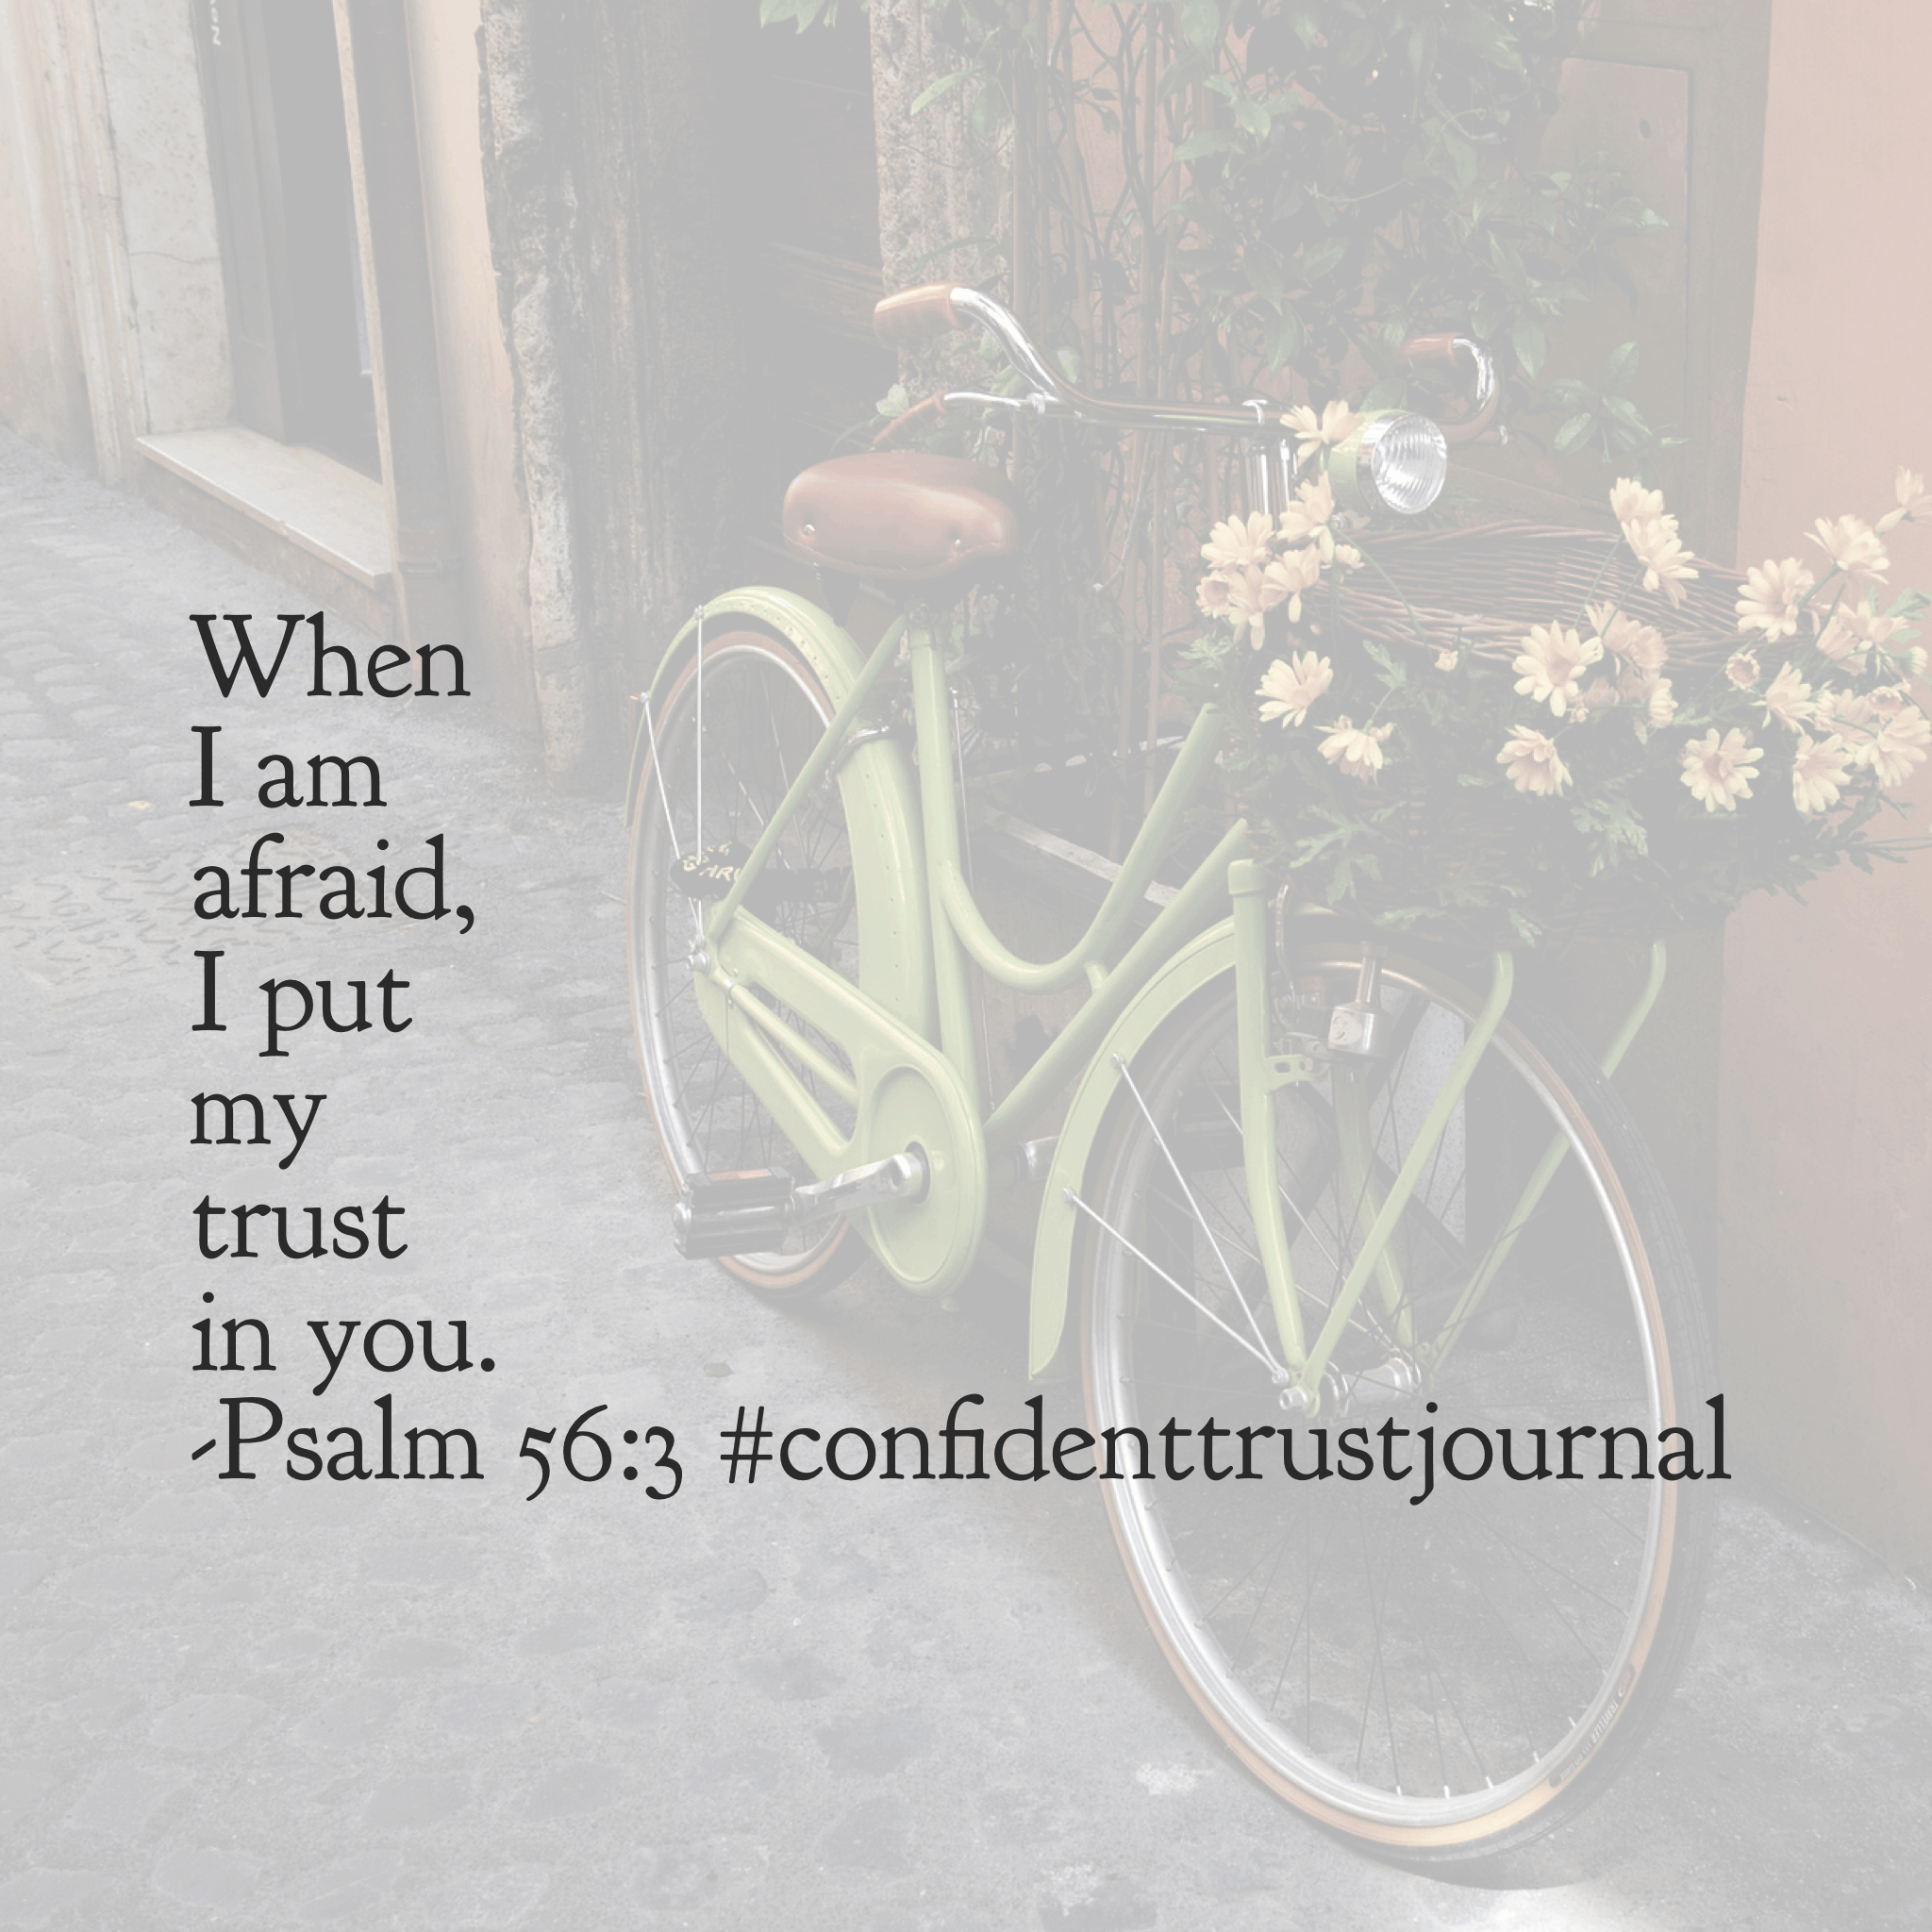 #confidenttrustjournal #biblereadingplan